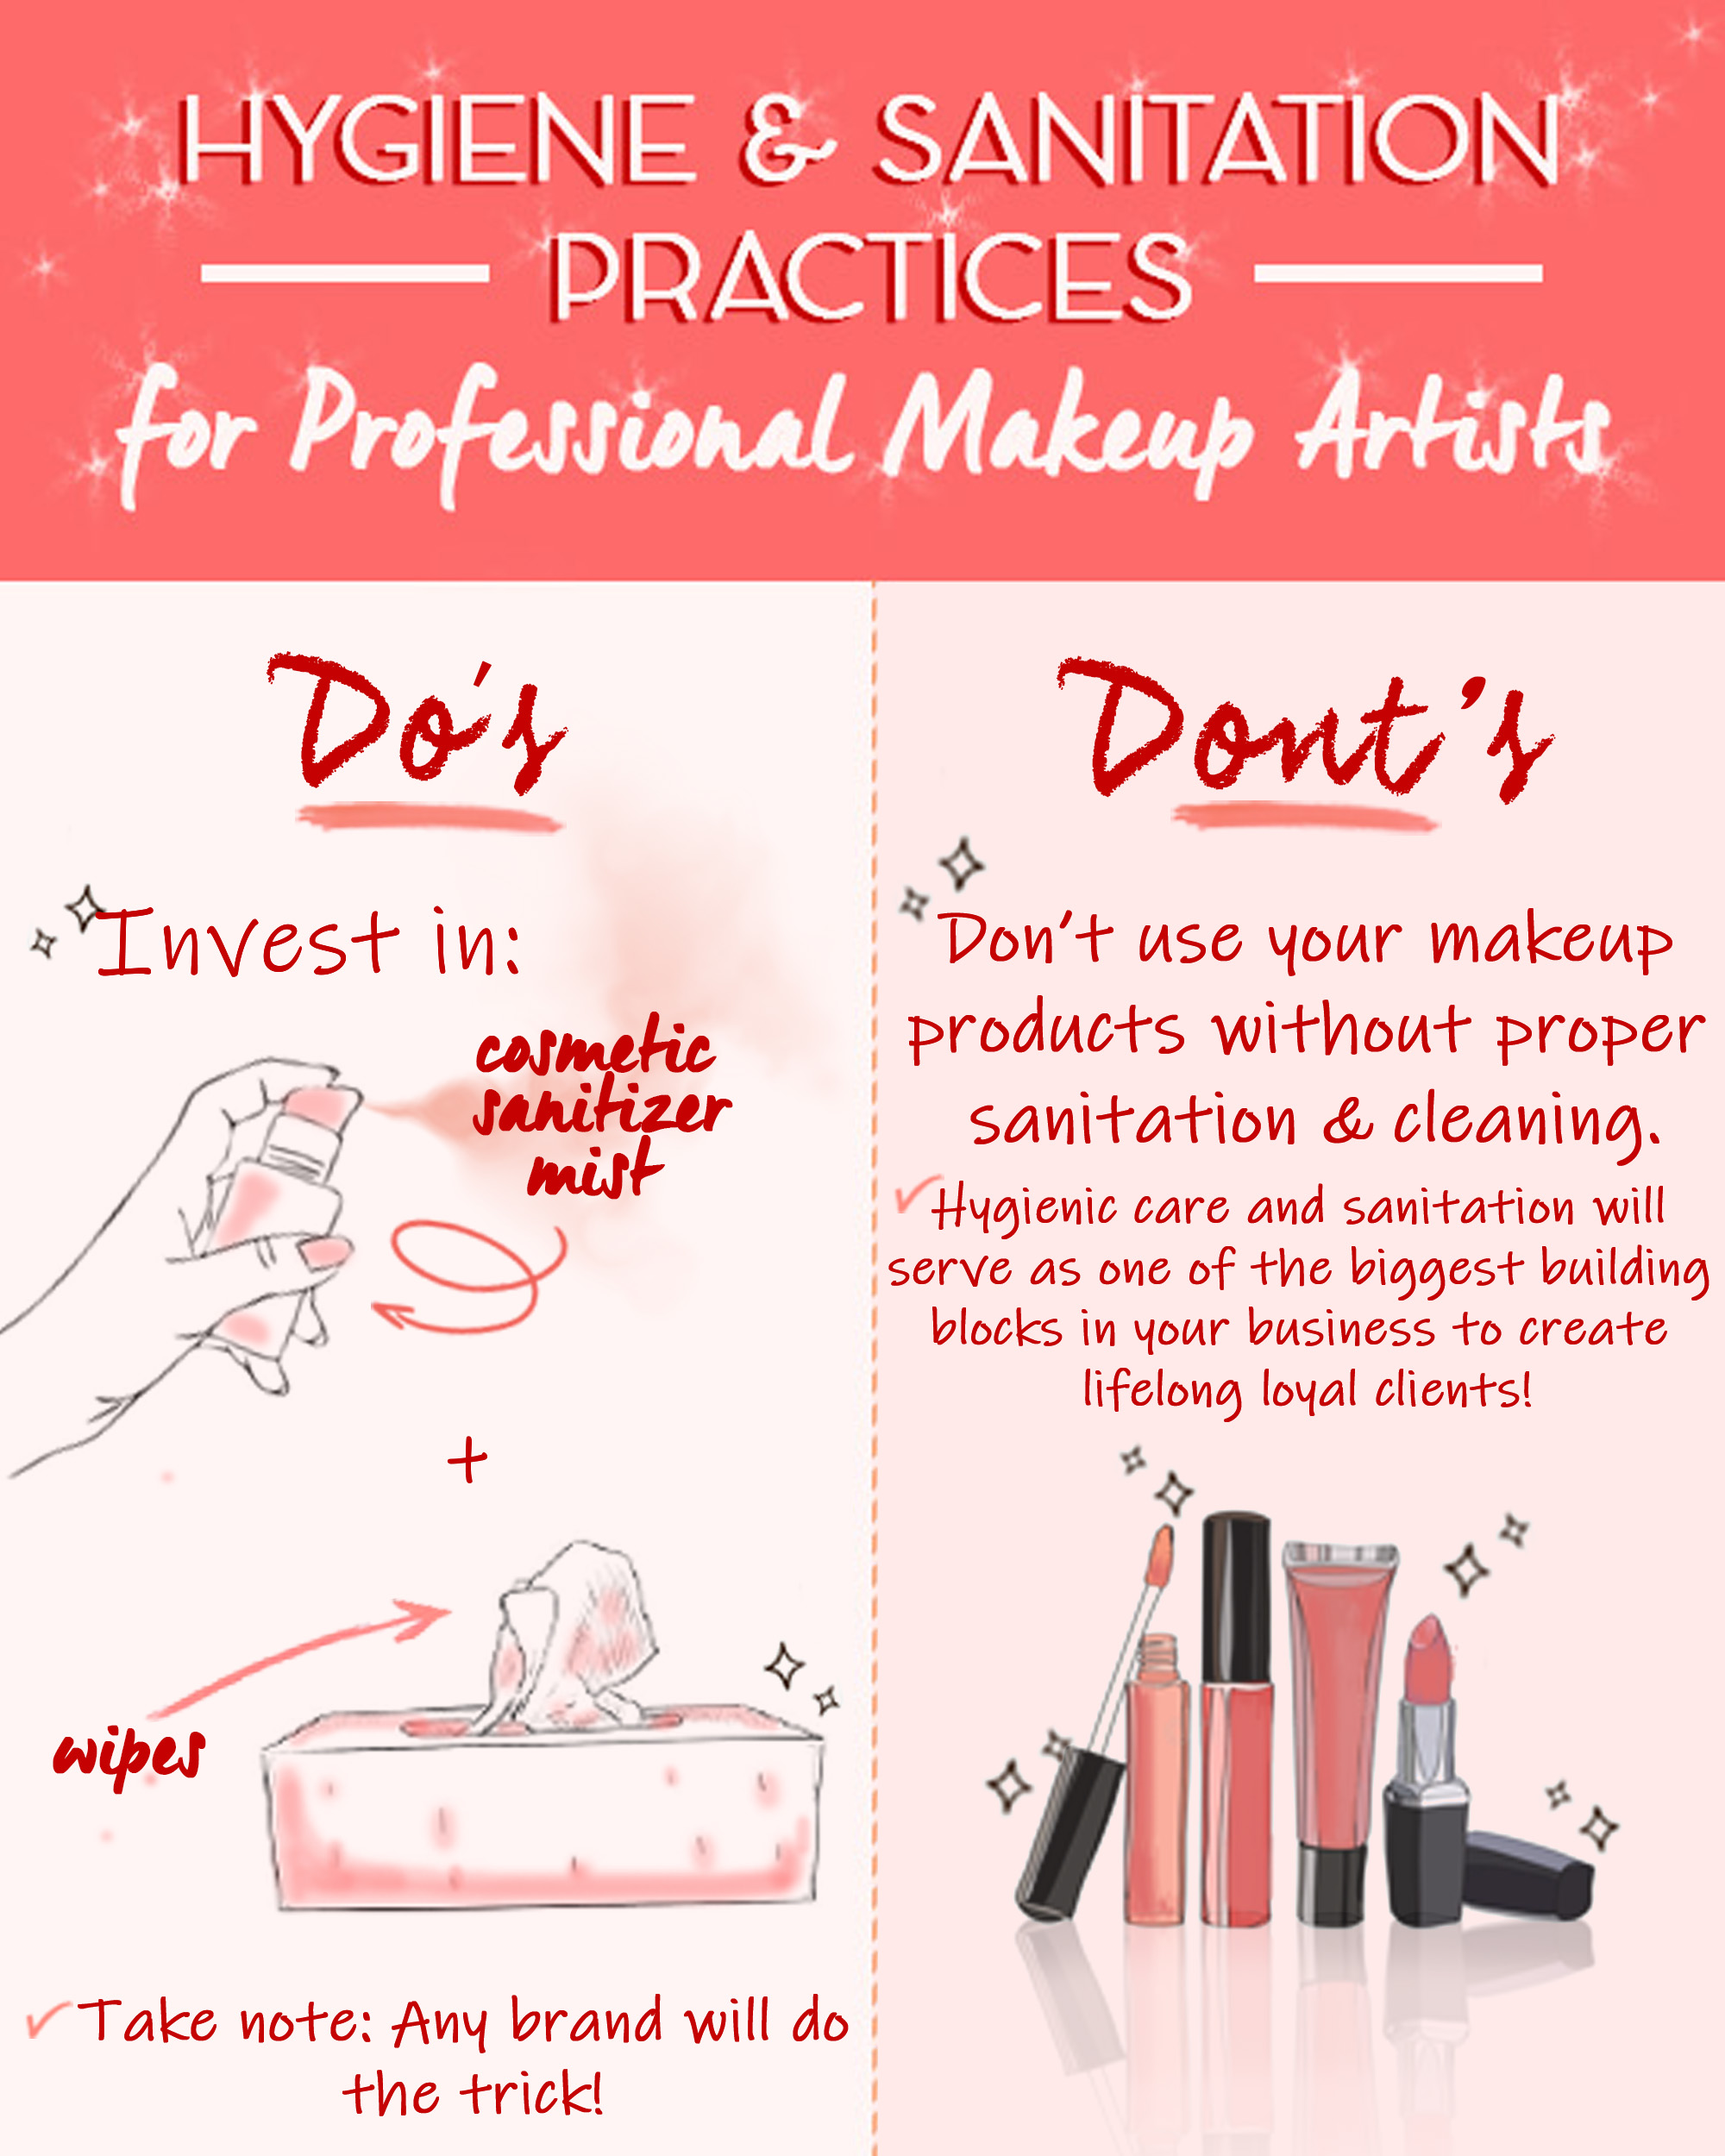 online-makeup-academy-HYGIENE-and-SANITATION-PRACTICES-1.jpg